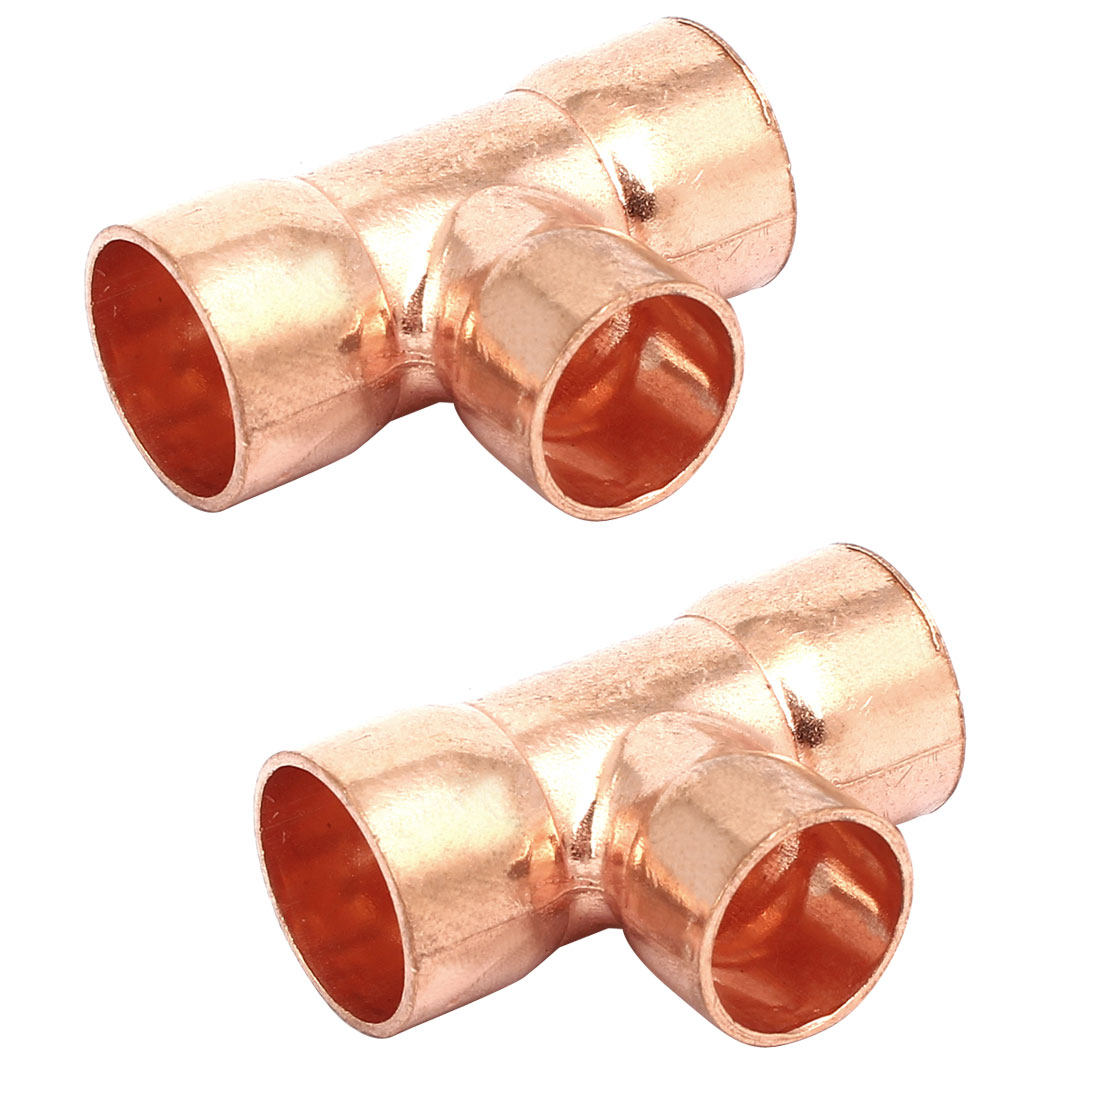 19mmx16mm Air Conditioner Copper Tee Joint Seperation Tube Connector 2pcs